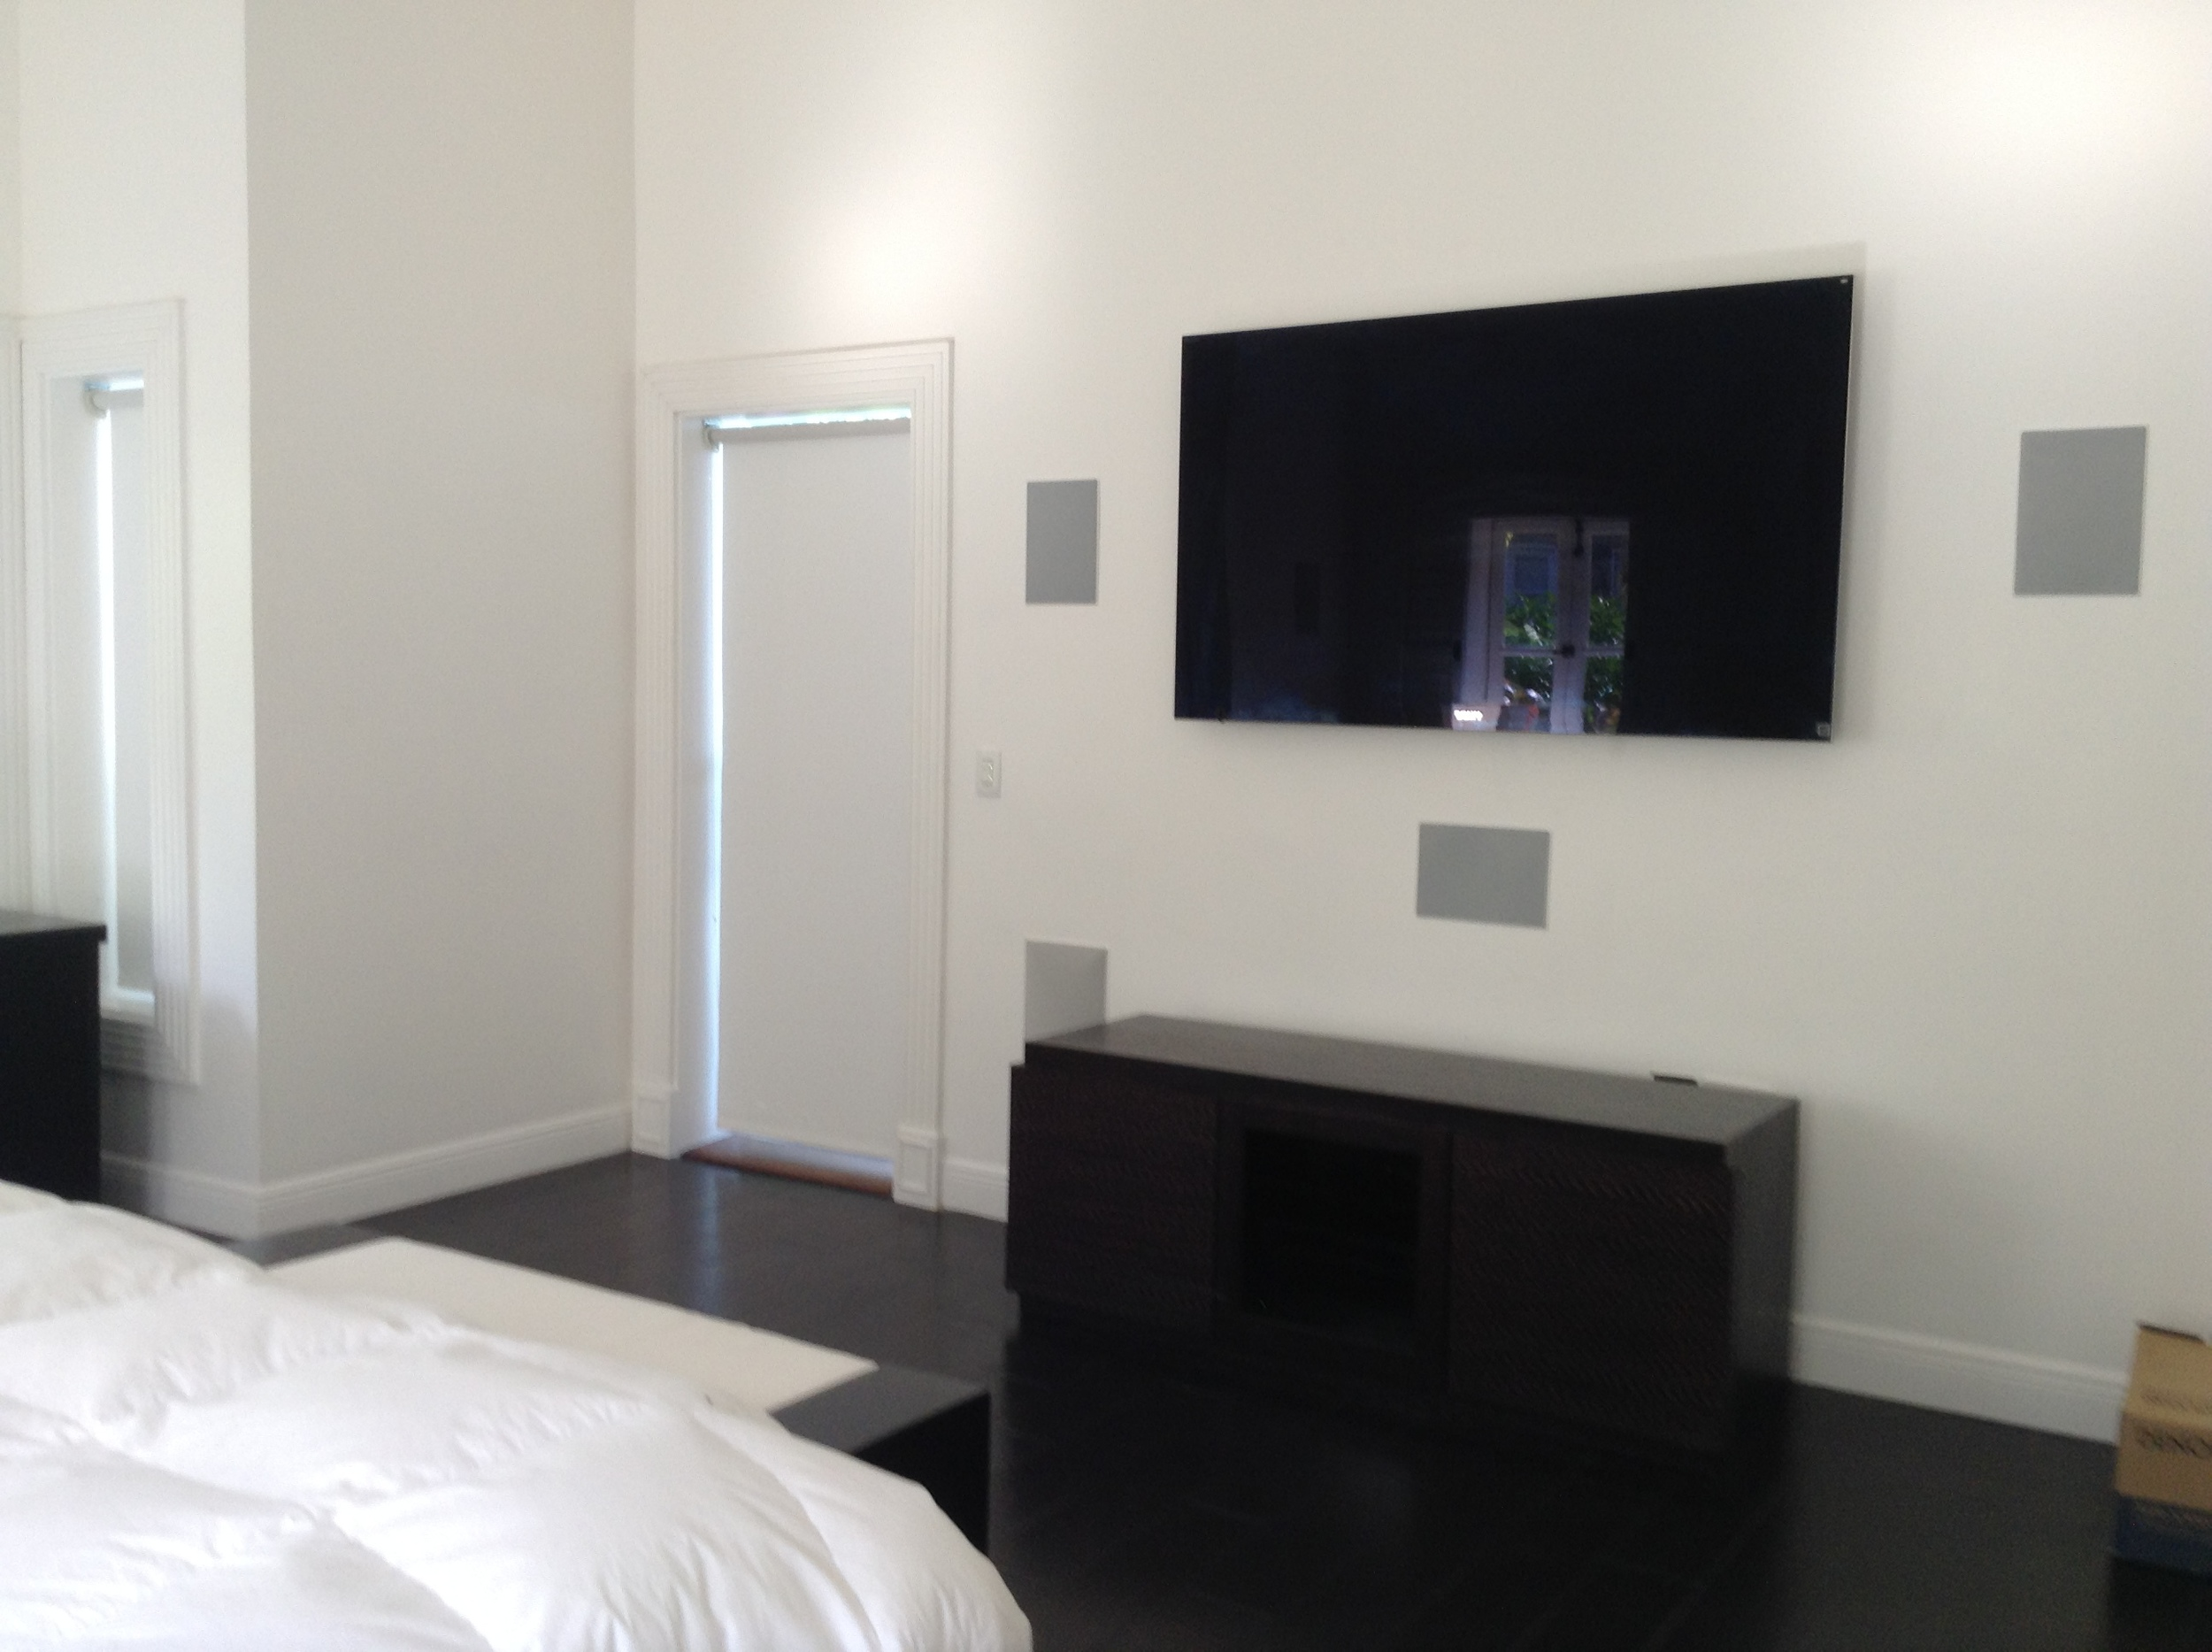 Every bedroom in the house features a single smart remote control to turn everything on and off. This bedroom in particular has 5.1 surround sound speakers.